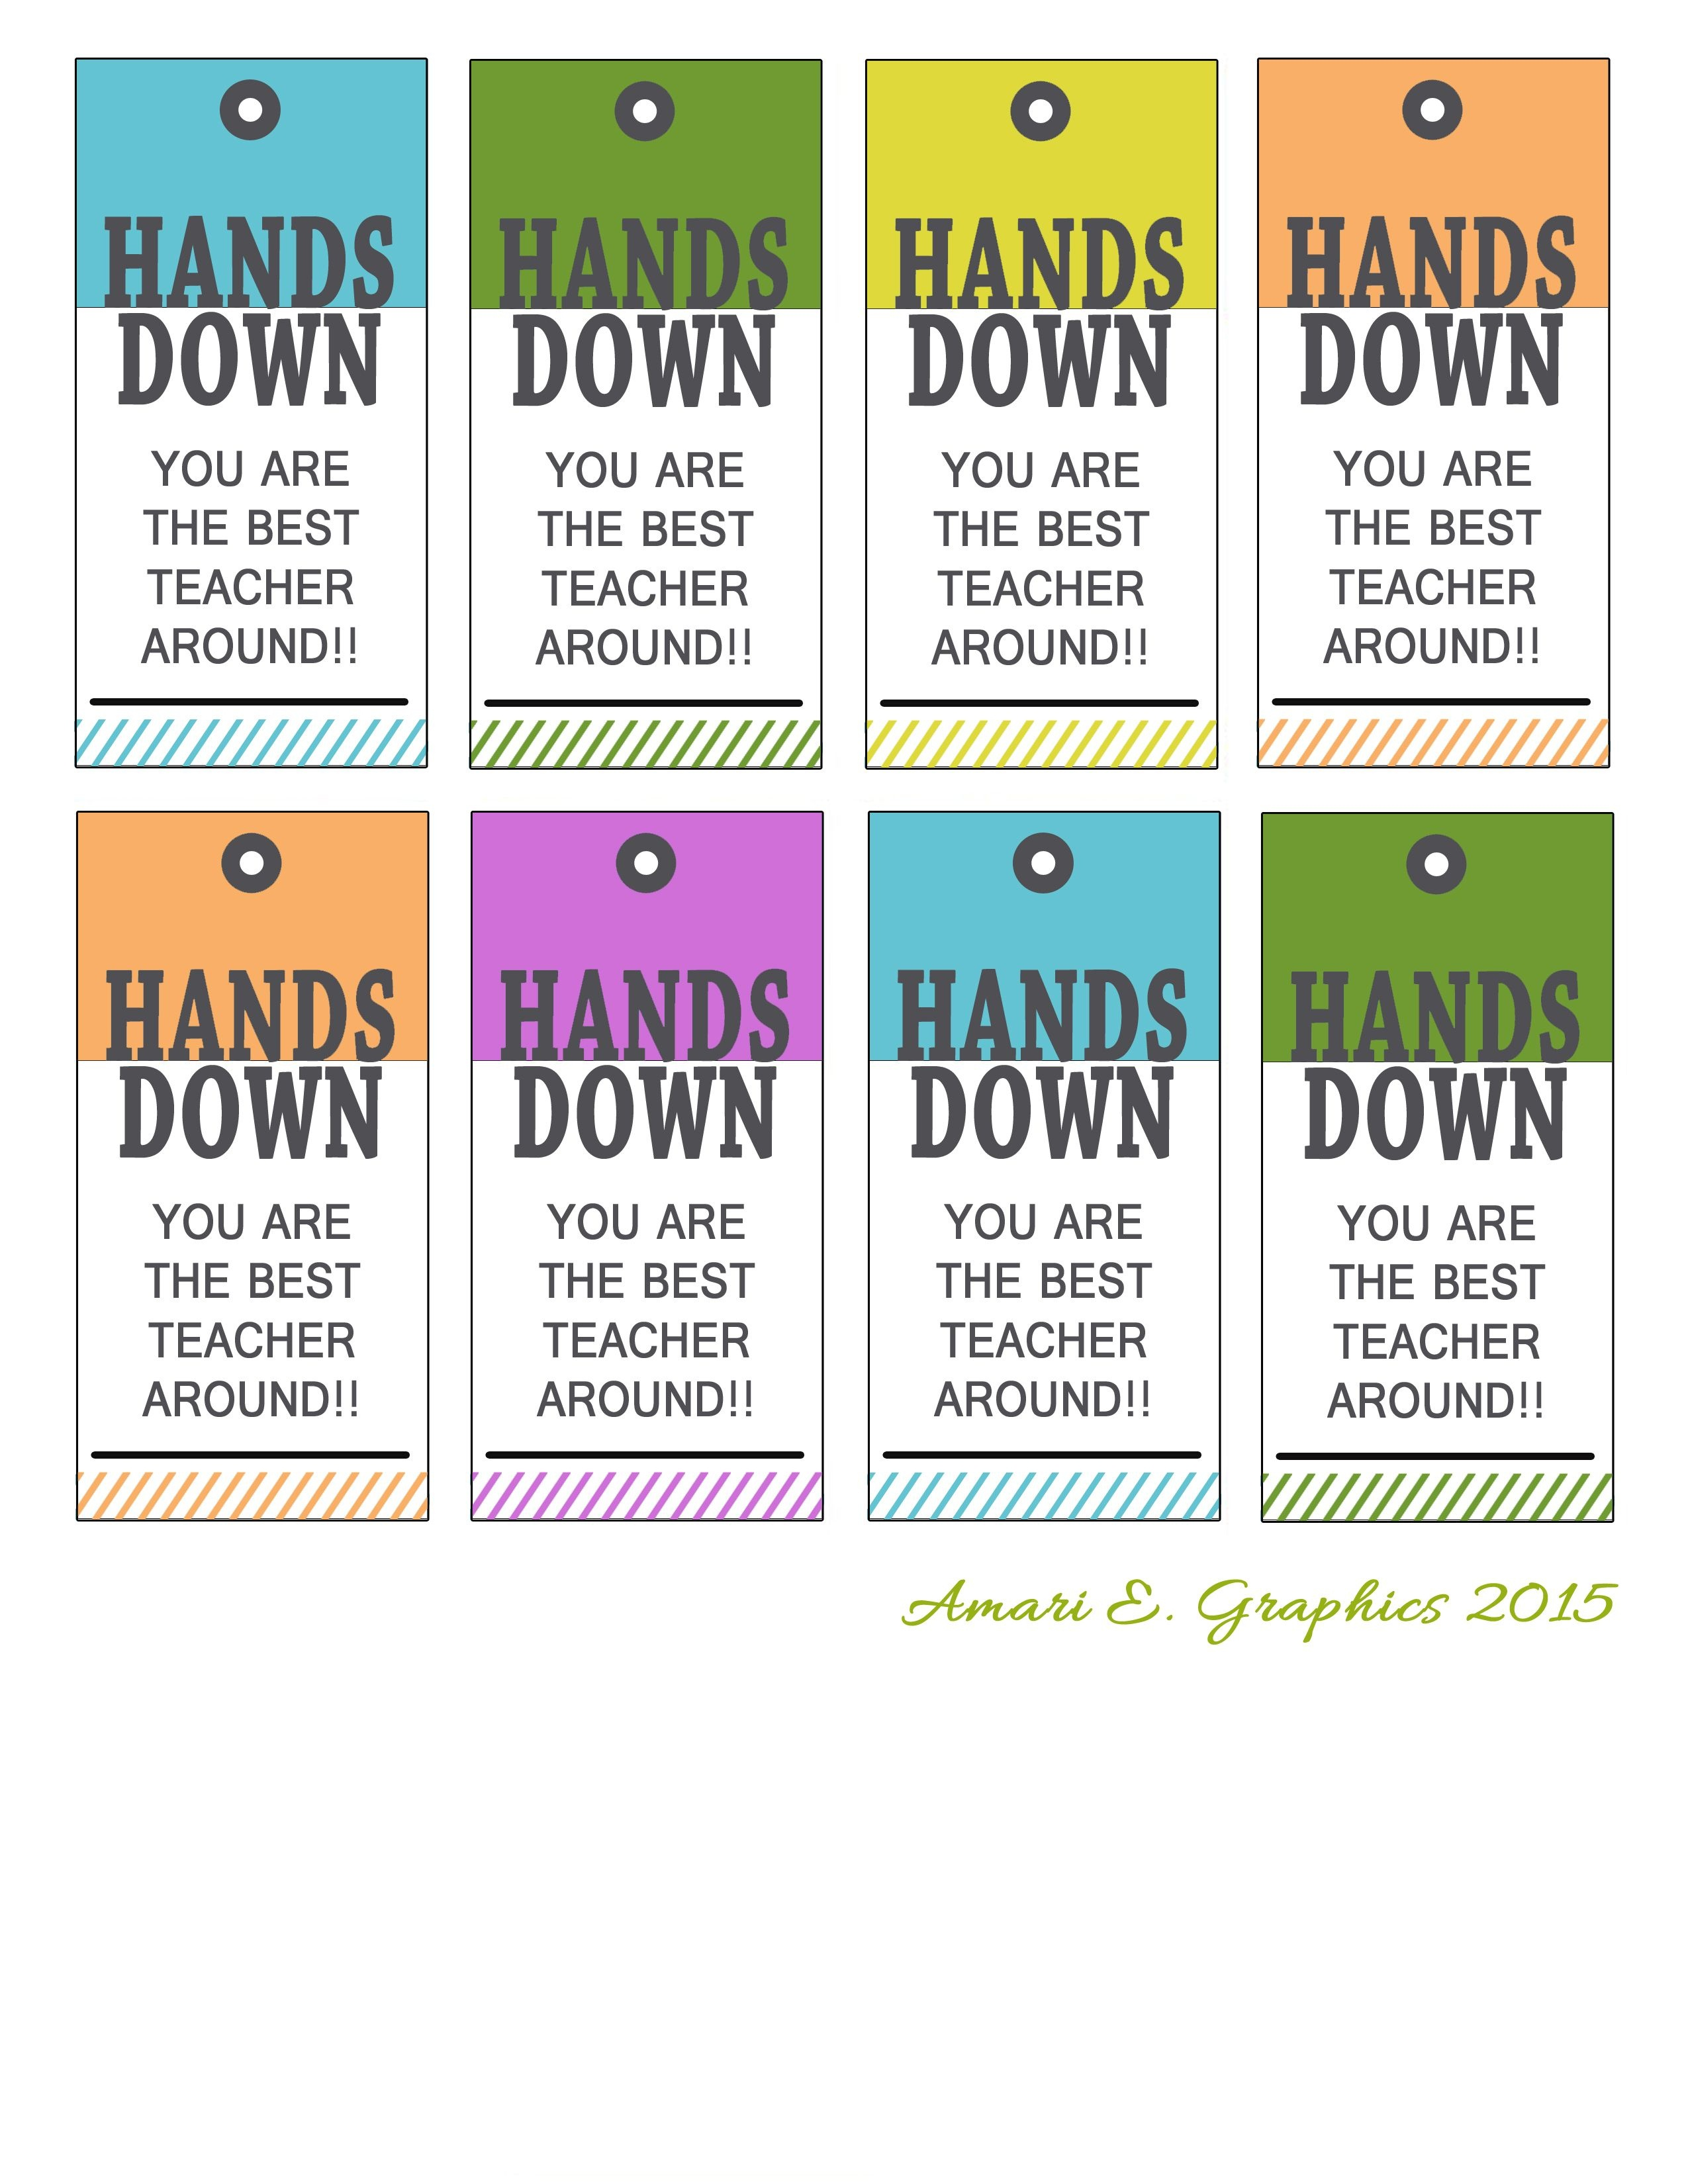 Free Printable For Hand Lotion, Sanitizer, Soap Tag For Teacher - Hands Down You Re The Best Teacher Around Free Printable